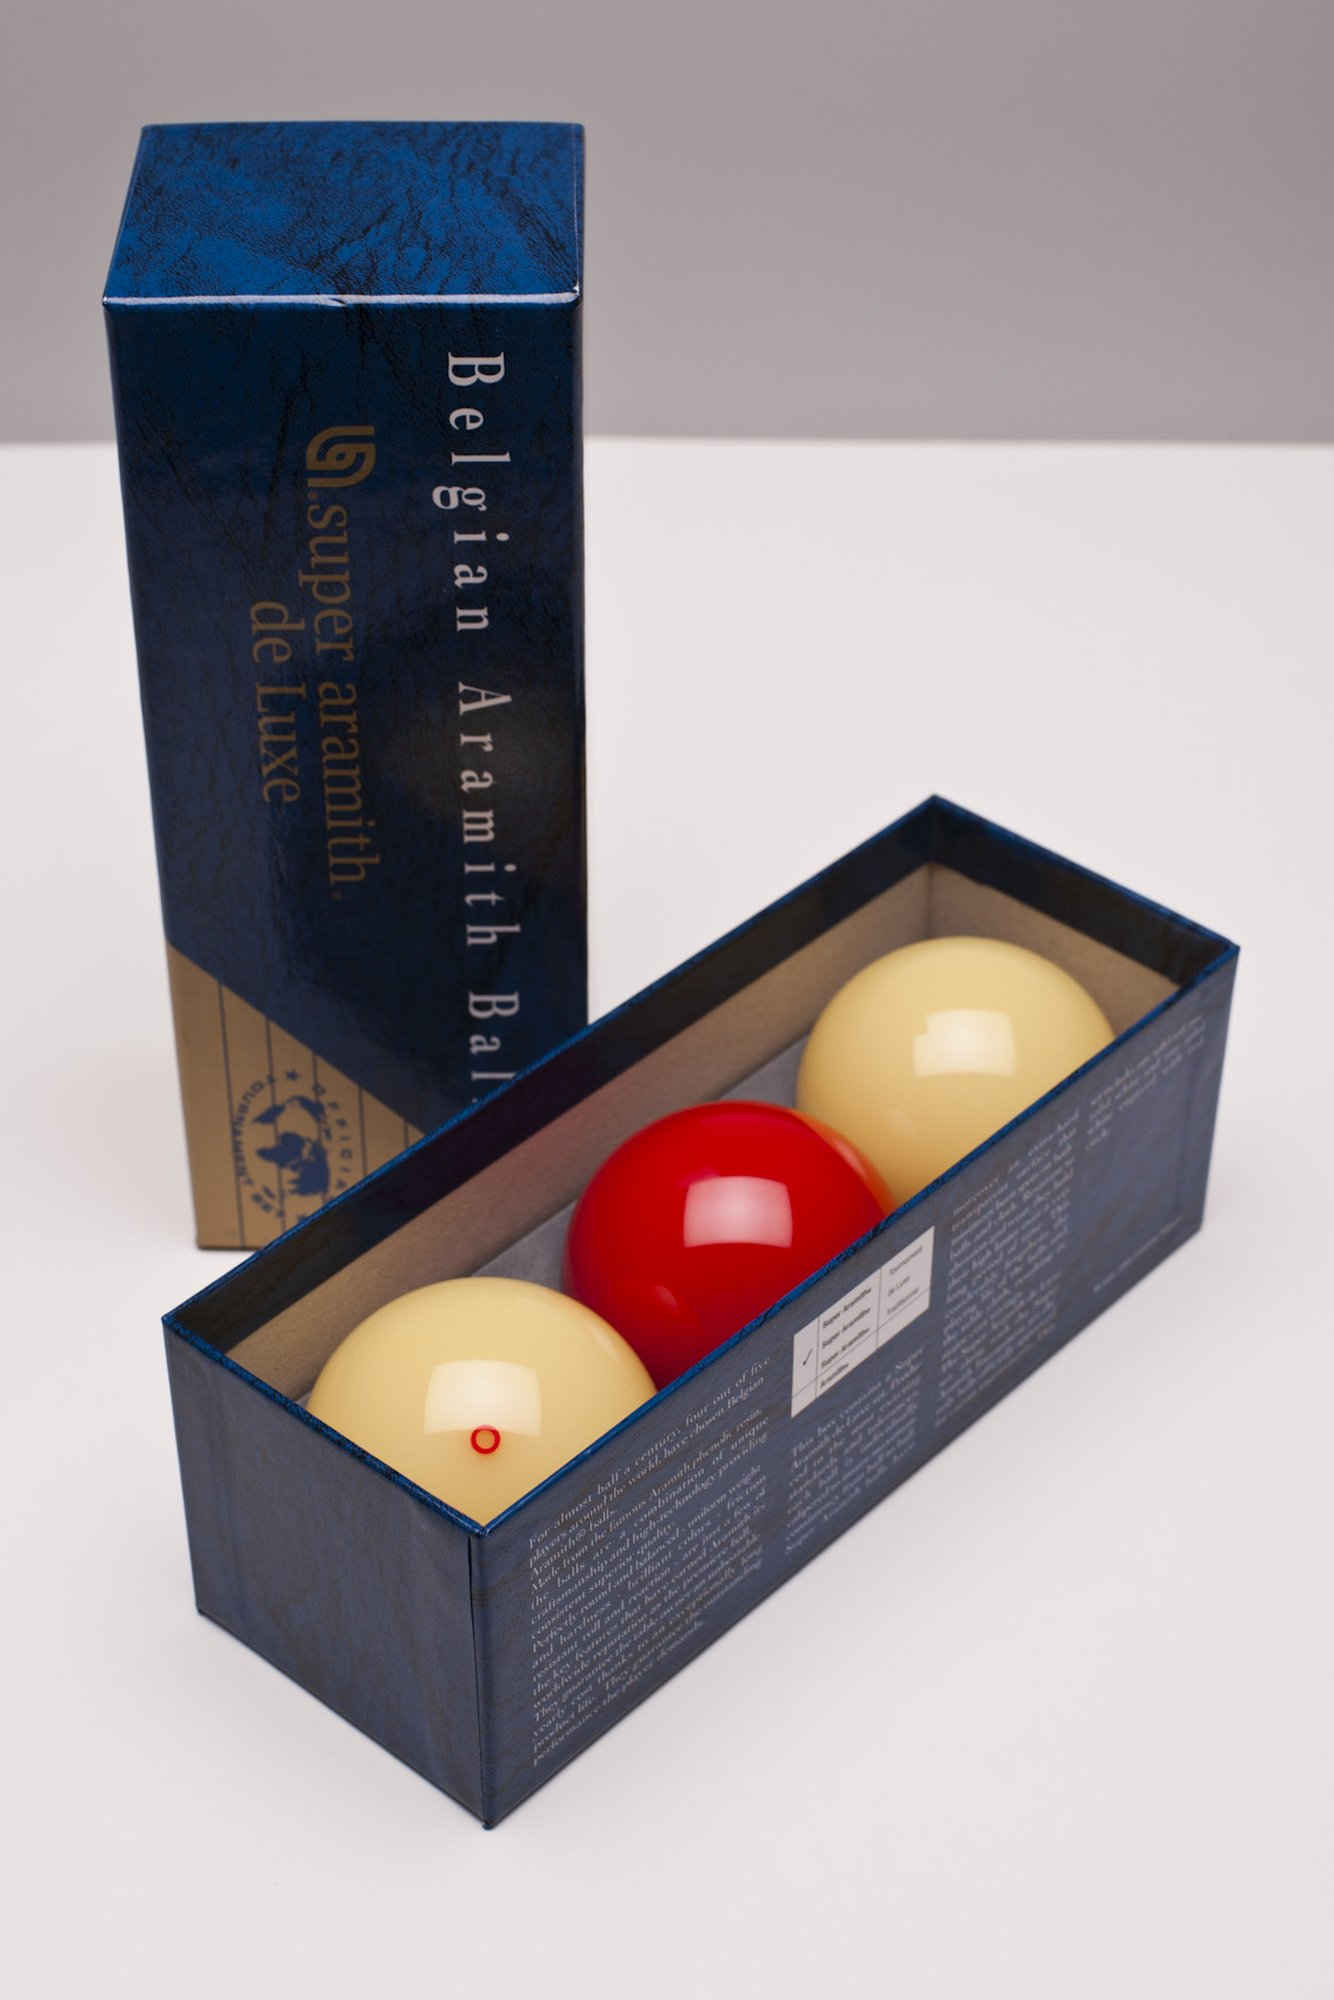 Carambolage-Kugeln Carom Super Aramith de Luxe, 61,5mm